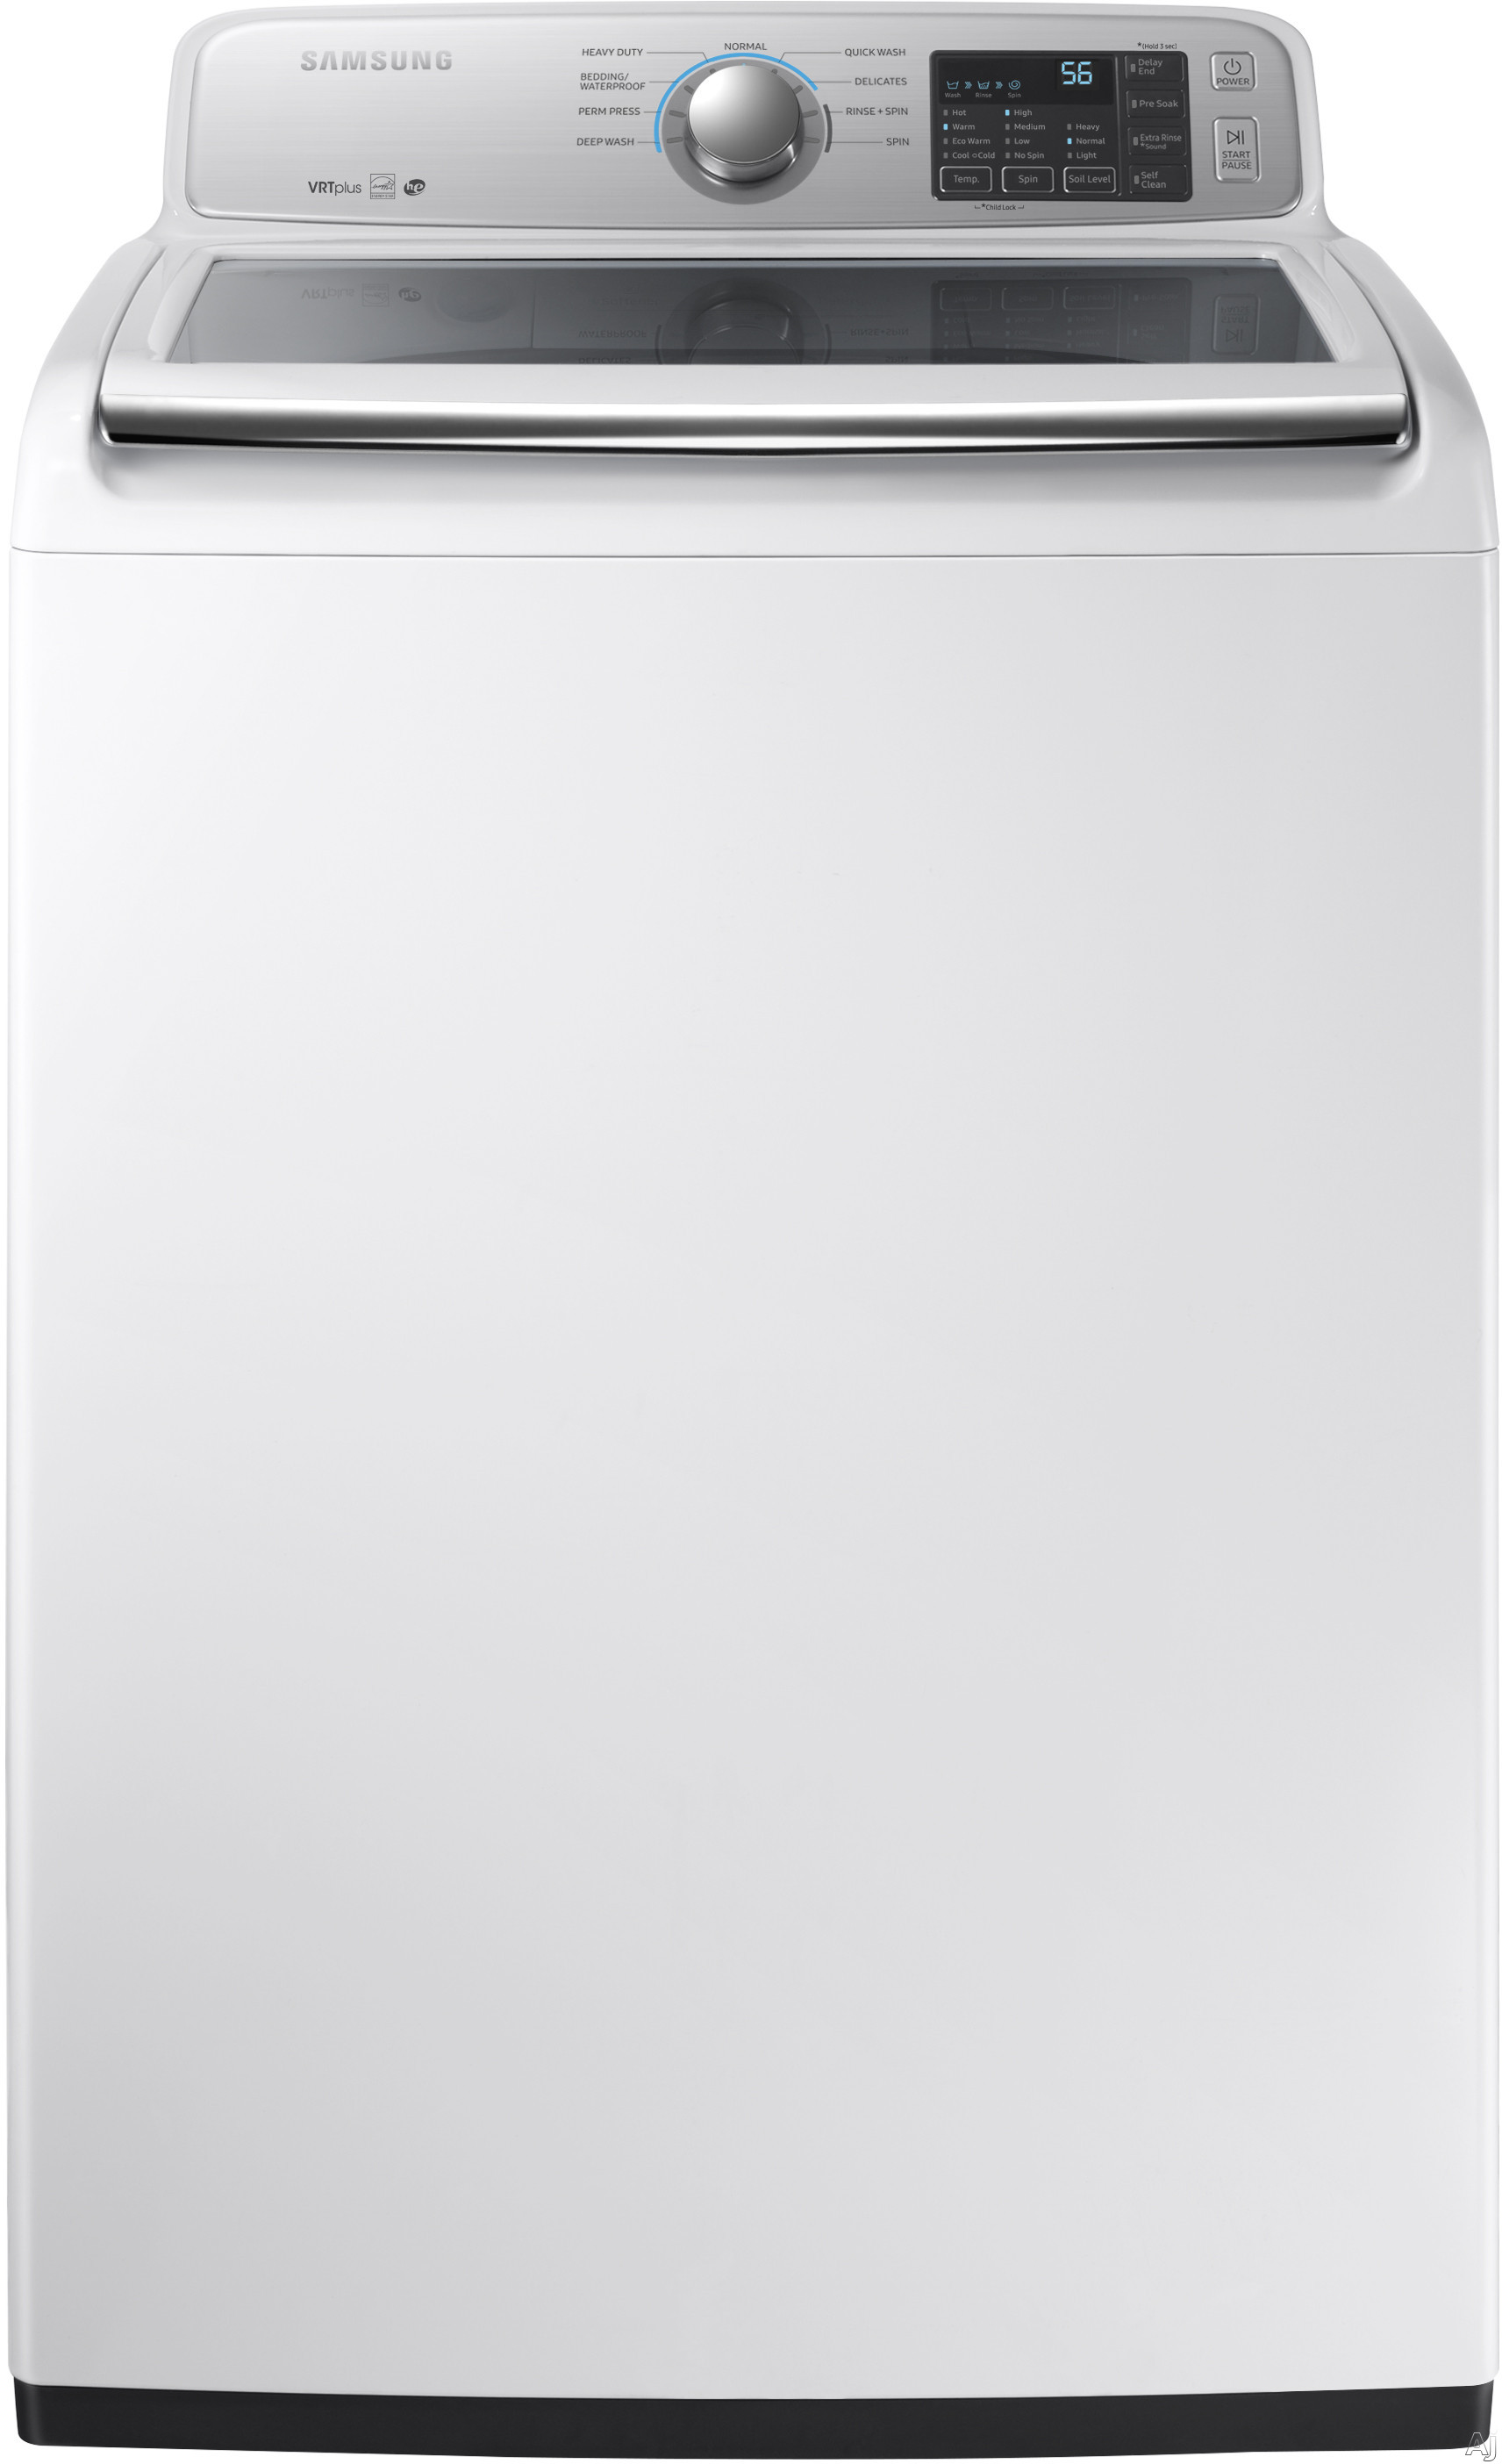 Samsung WA45M7050AW 27 Inch Top Load Washer with Self Clean, Soft-Close Lid, ENERGY STAR®, VRT Plus™ Technology, 3-Tray EZ Drawer Dispenser, 9 Wash Cycles, Quick Wash and 4.5 cu. ft. Capacity WA45M7050AW